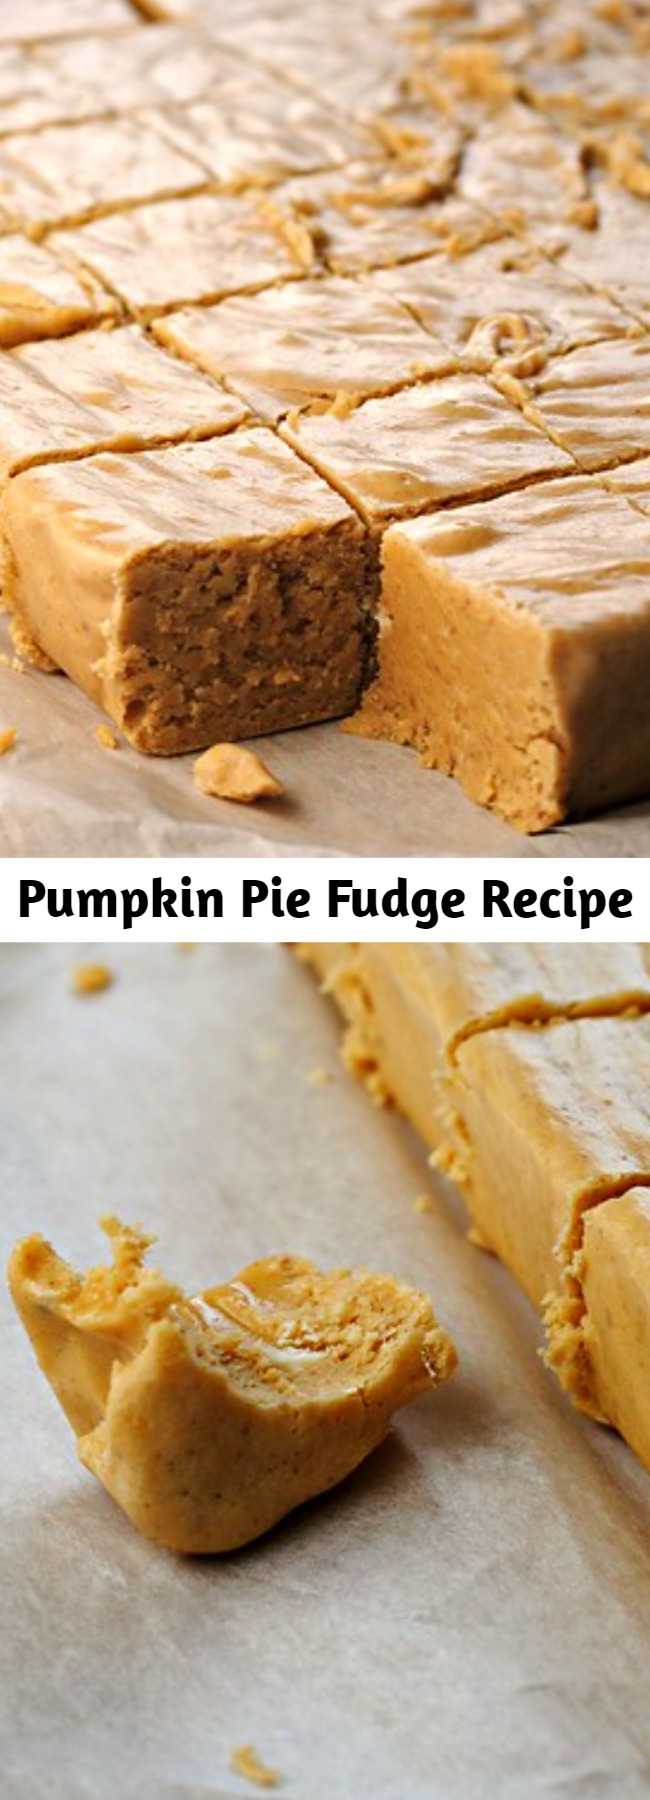 Pumpkin Pie Fudge Recipe - Soft, creamy fudge with all the flavors of your favorite pumpkin pie. It's the perfect Thanksgiving splurge is you're looking for a little bit of the real deal. Enjoy!